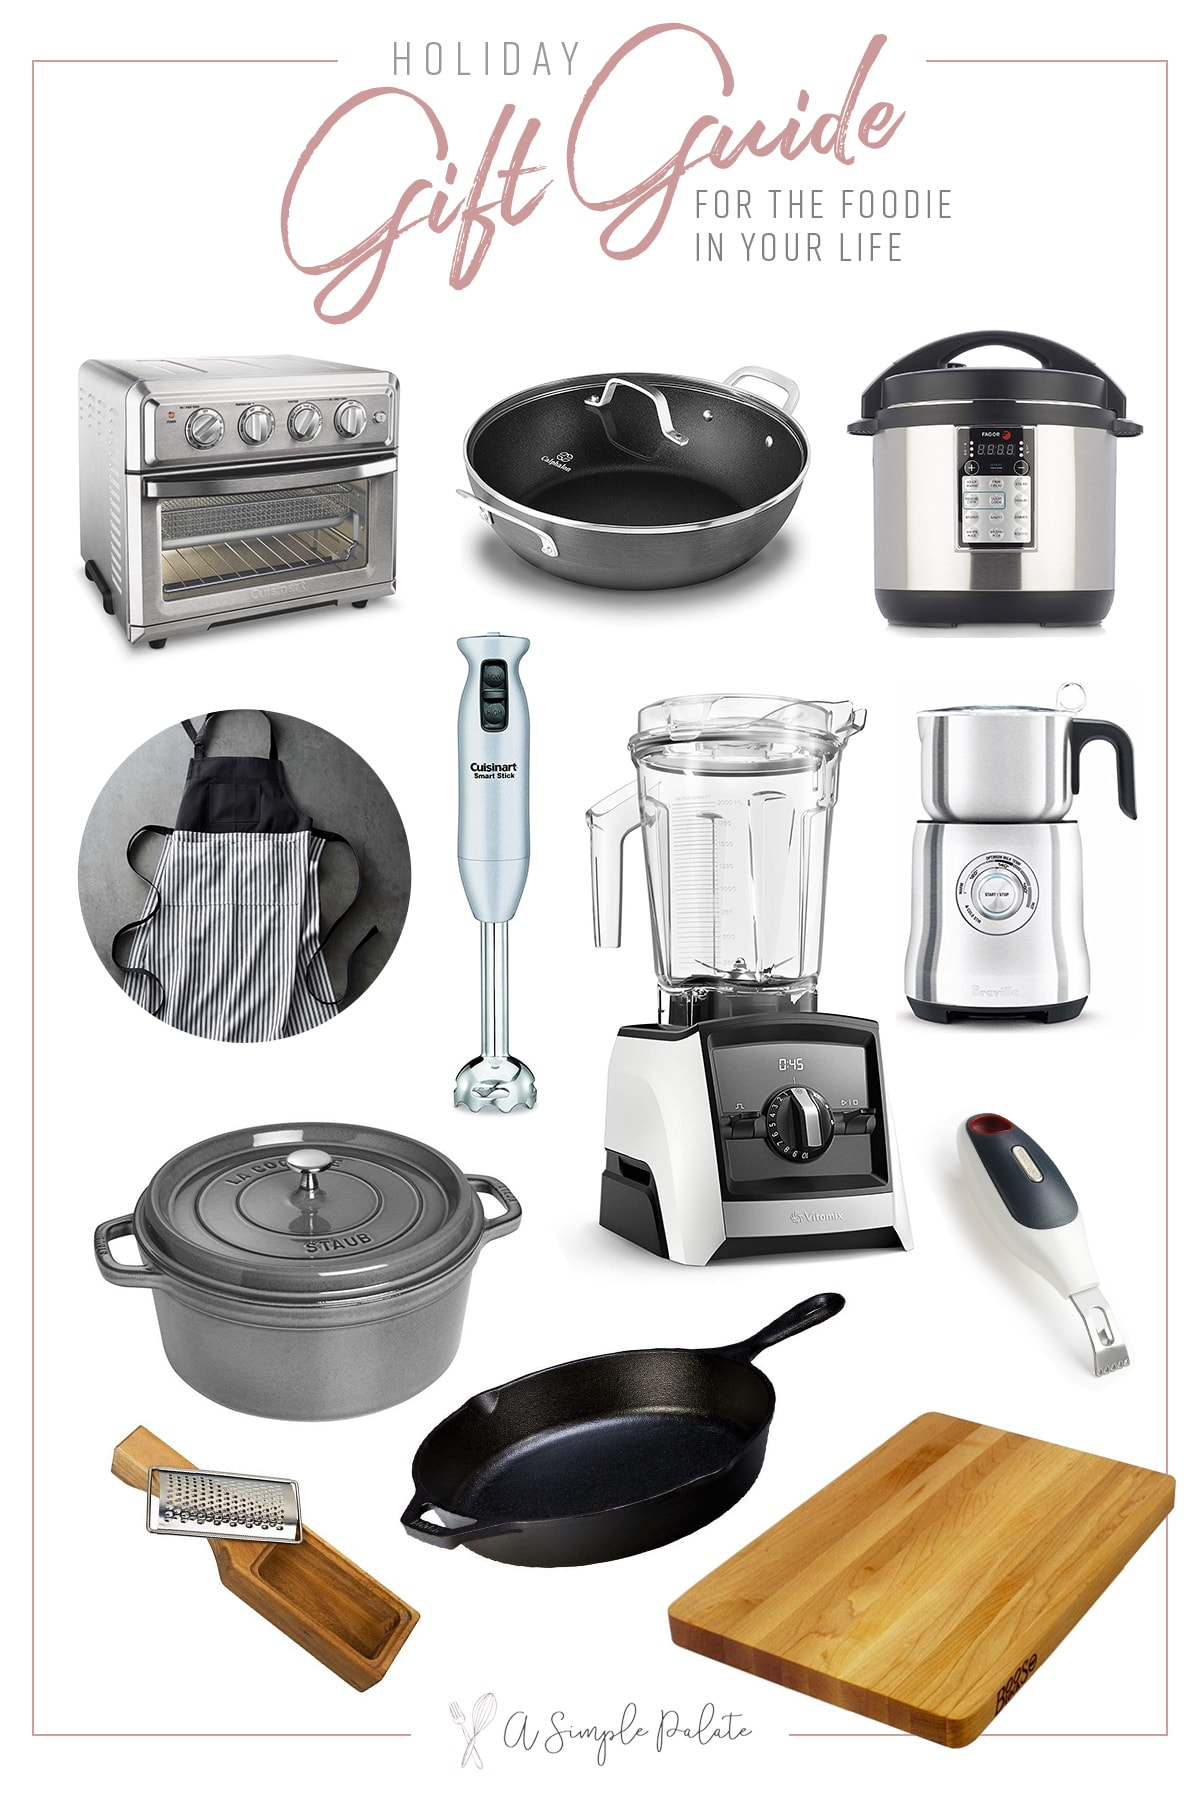 A holiday gift guide with kitchen tools on a white background